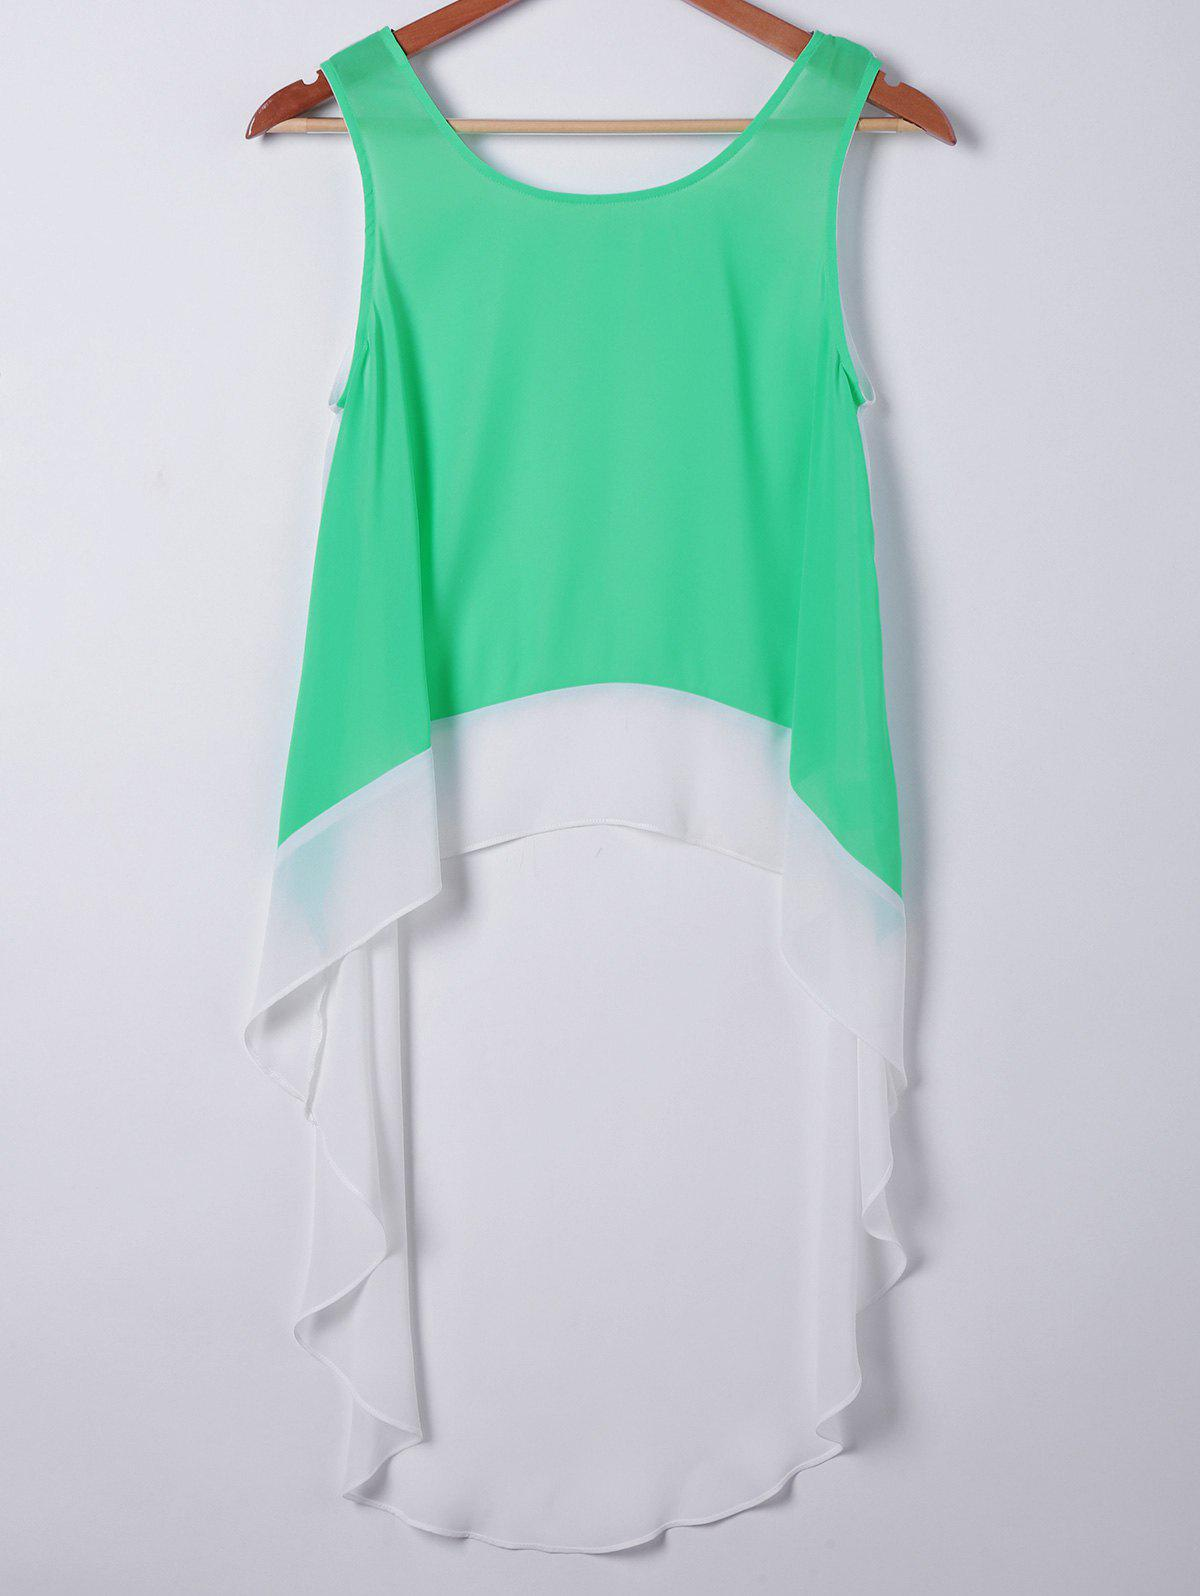 Casual Women's Loose-Fitting Round Neck Sleeveless Top - APPLE GREEN M